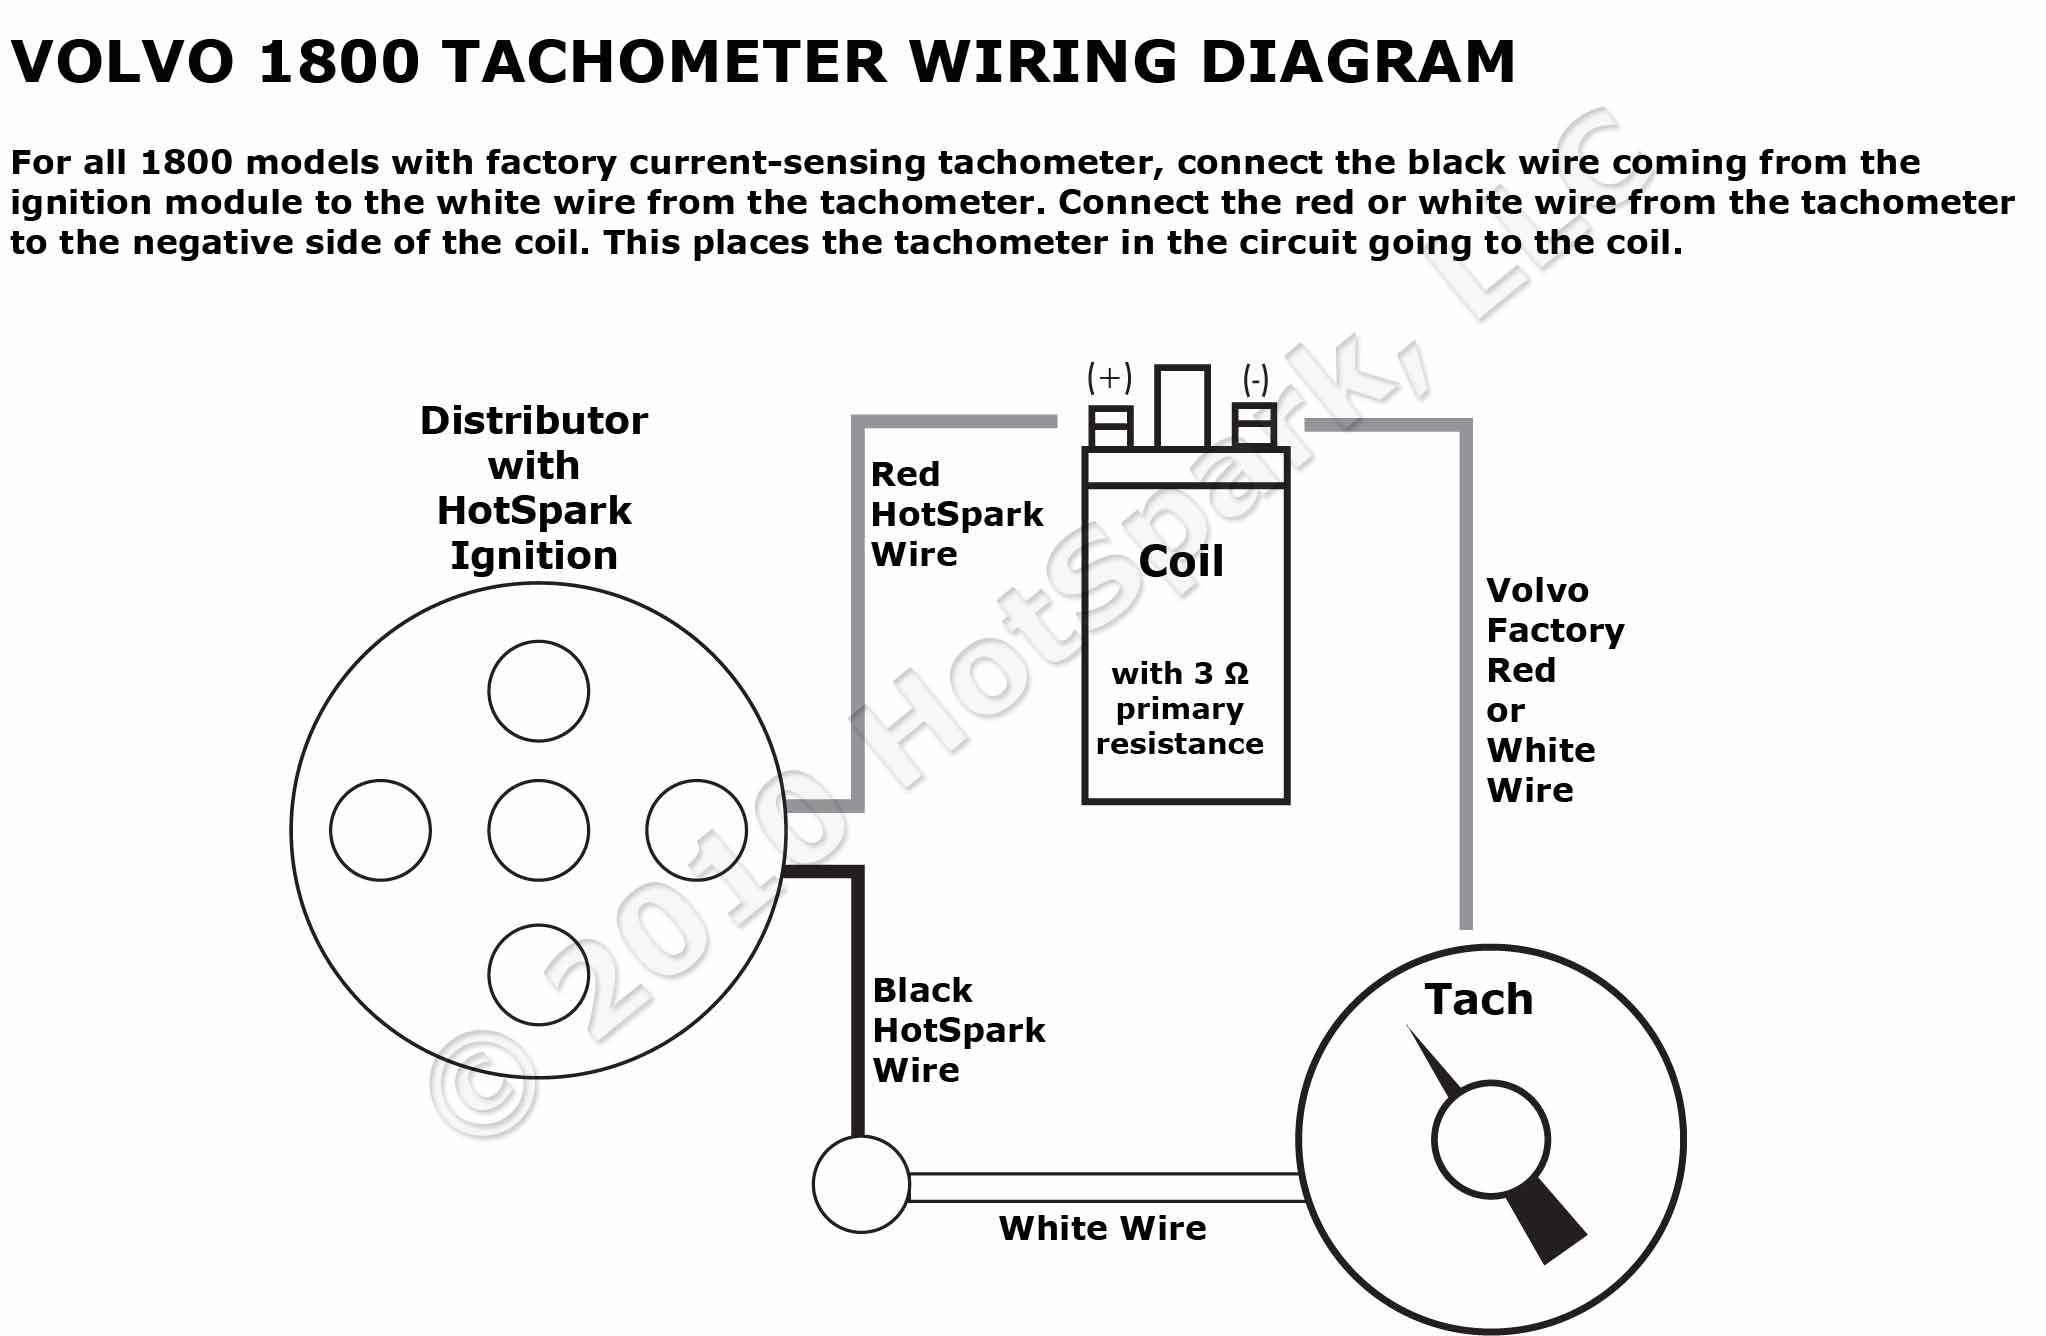 kenworth alternator wiring with Volvo 1800 Wiring Diagram on Ford F650 Cummins Wiring Diagram additionally 10 Round Table Seating Chart Diagram besides SK25756 together with Wiring as well 4mnsb 2005 Kw Isx Xxxxx Pid 131 Fmi Pid.